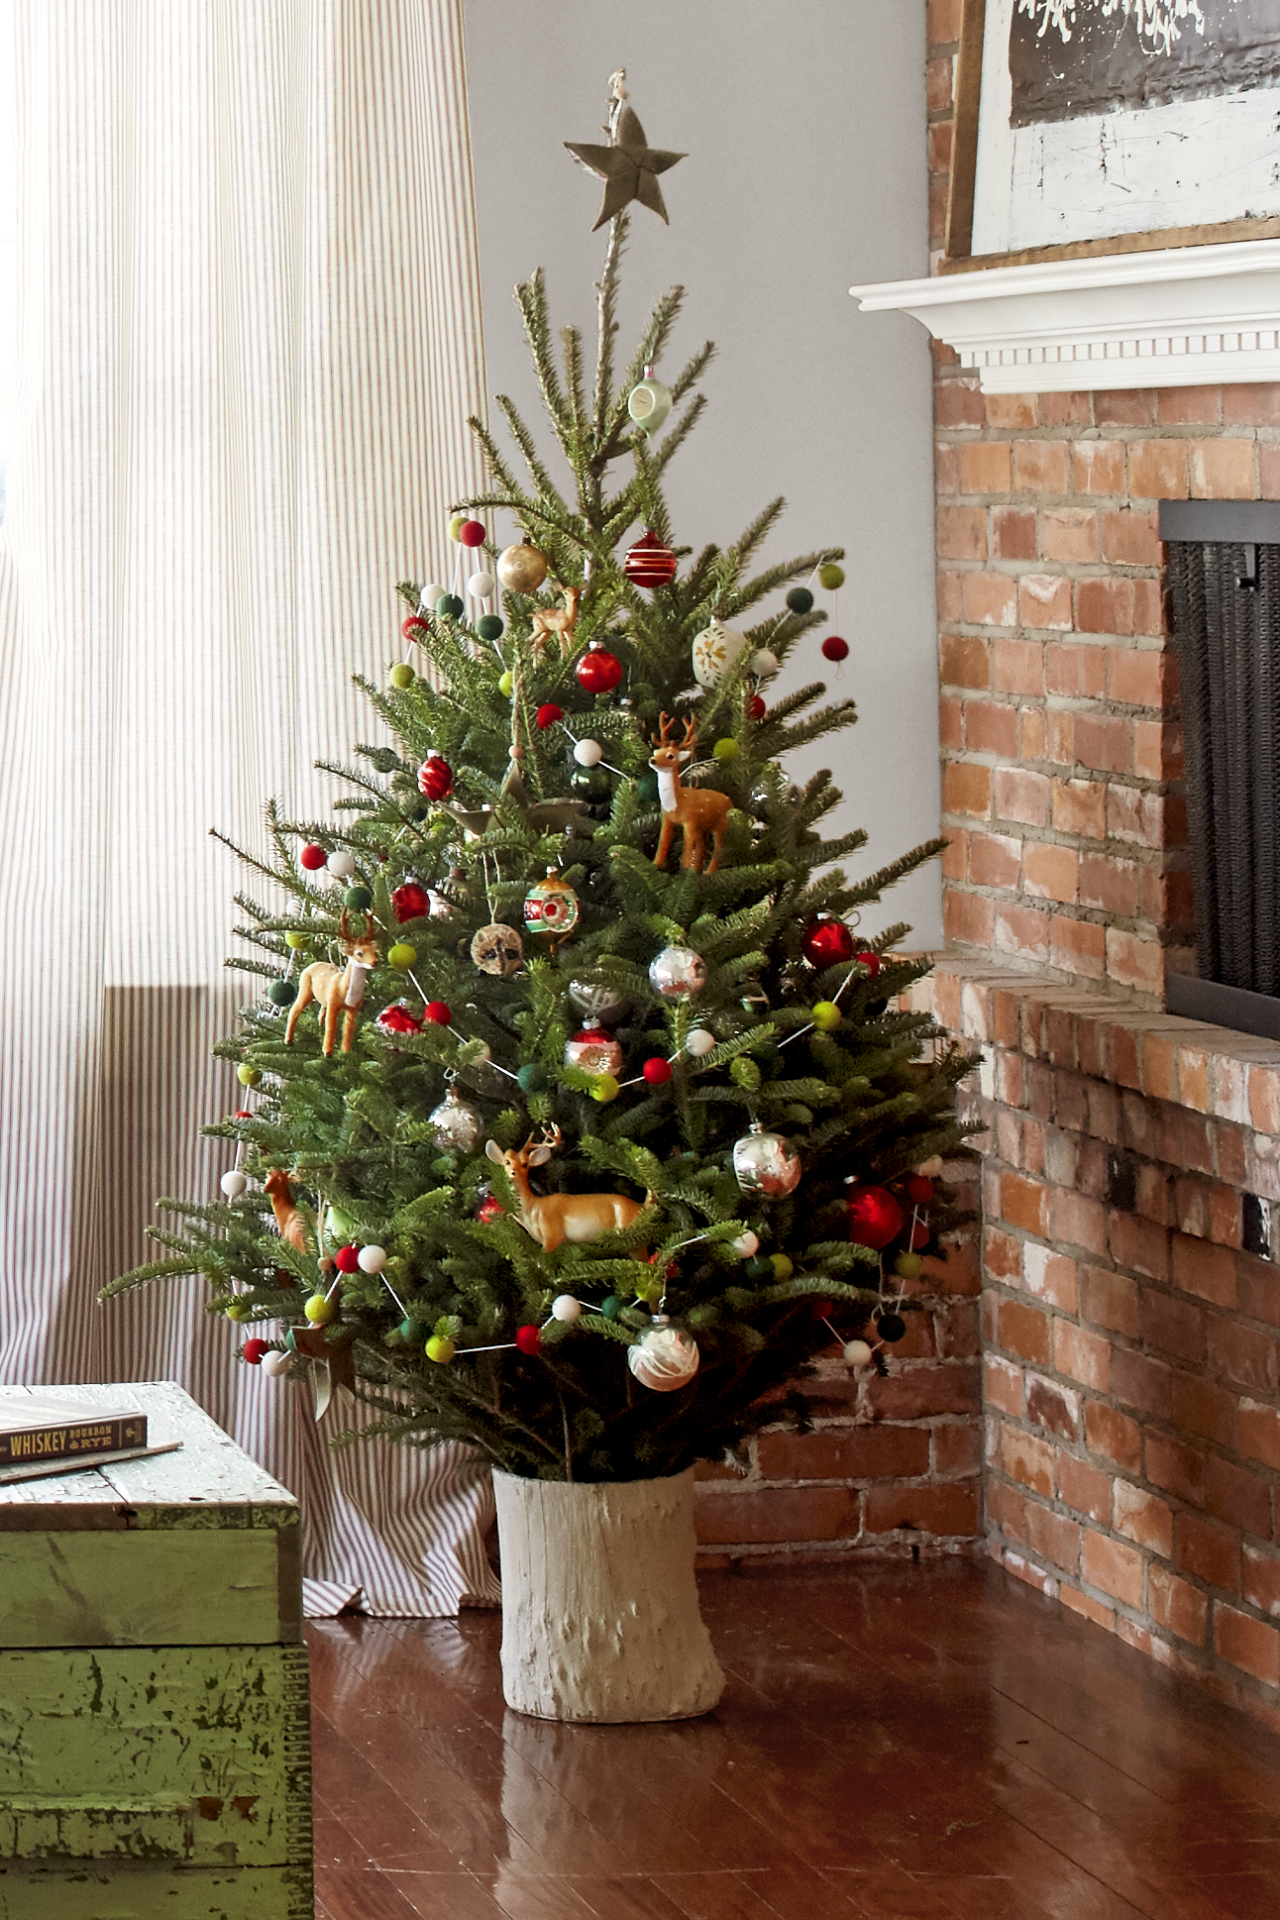 18 Best Small Christmas Trees Ideas For Decorating Mini  - Plant Christmas Trees